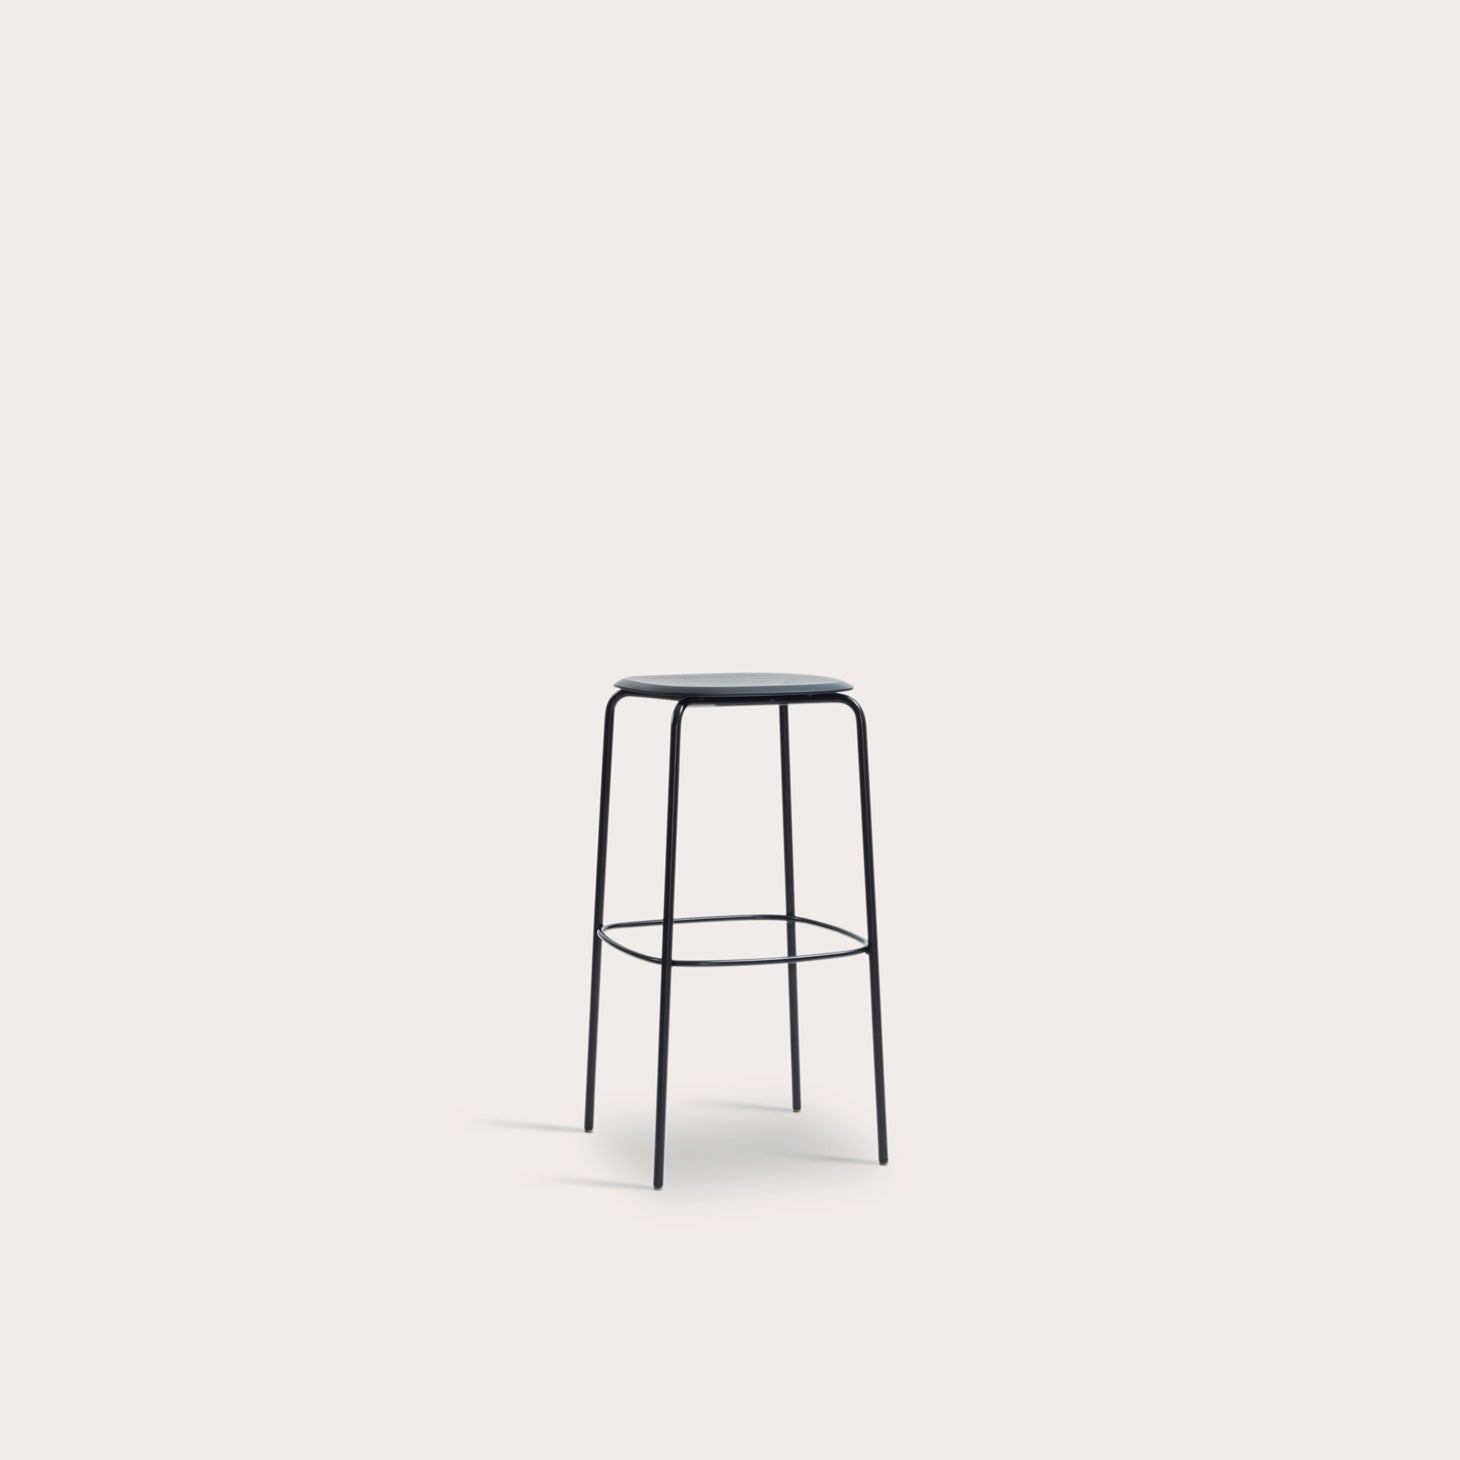 Okito Stool Seating Laeufer & Keichel Designer Furniture Sku: 006-120-10126